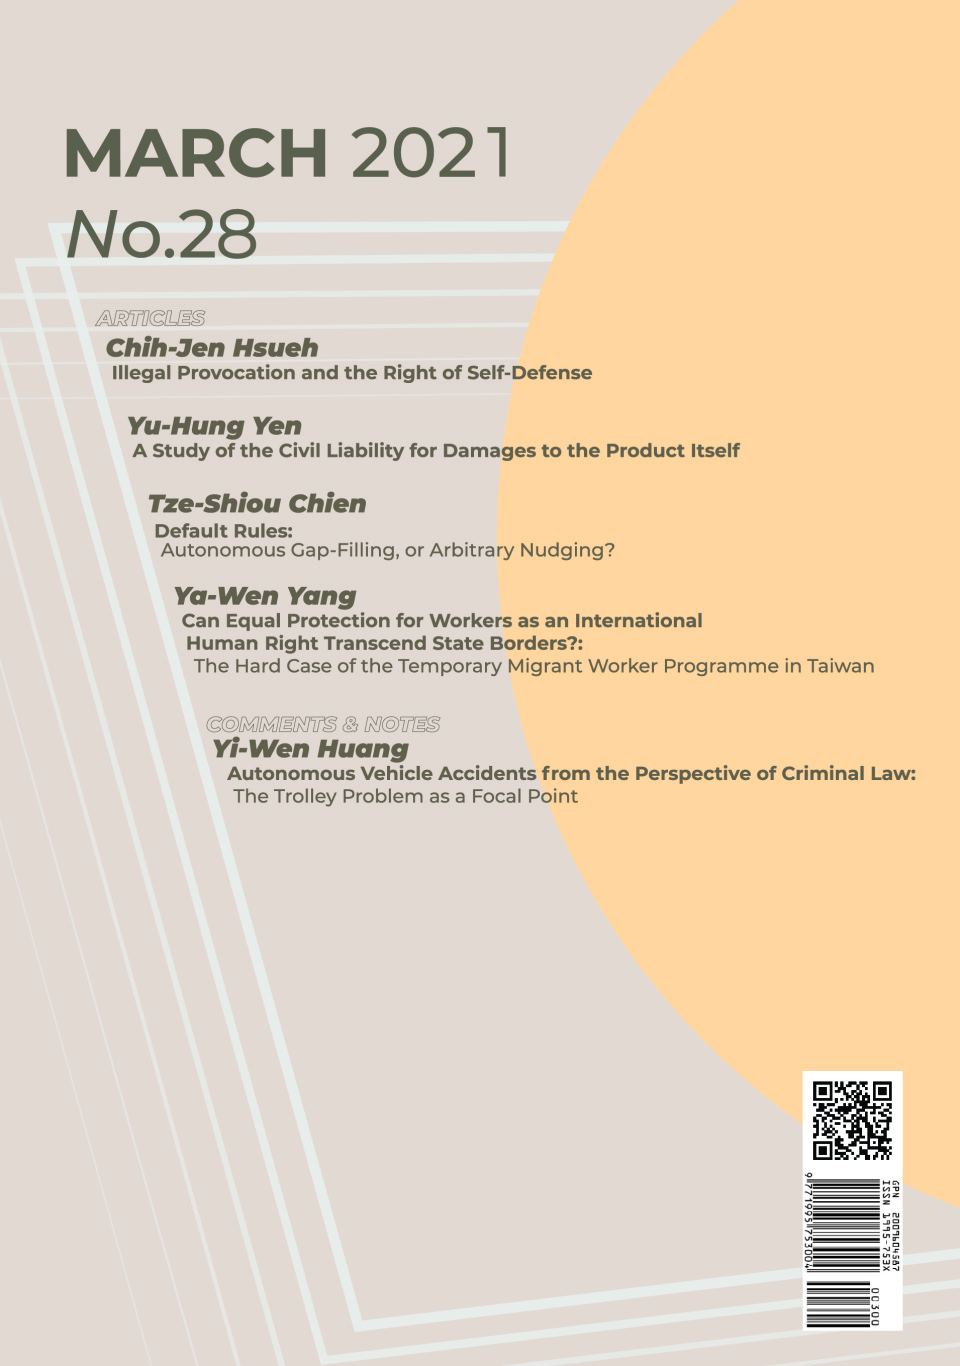 Issue No.28